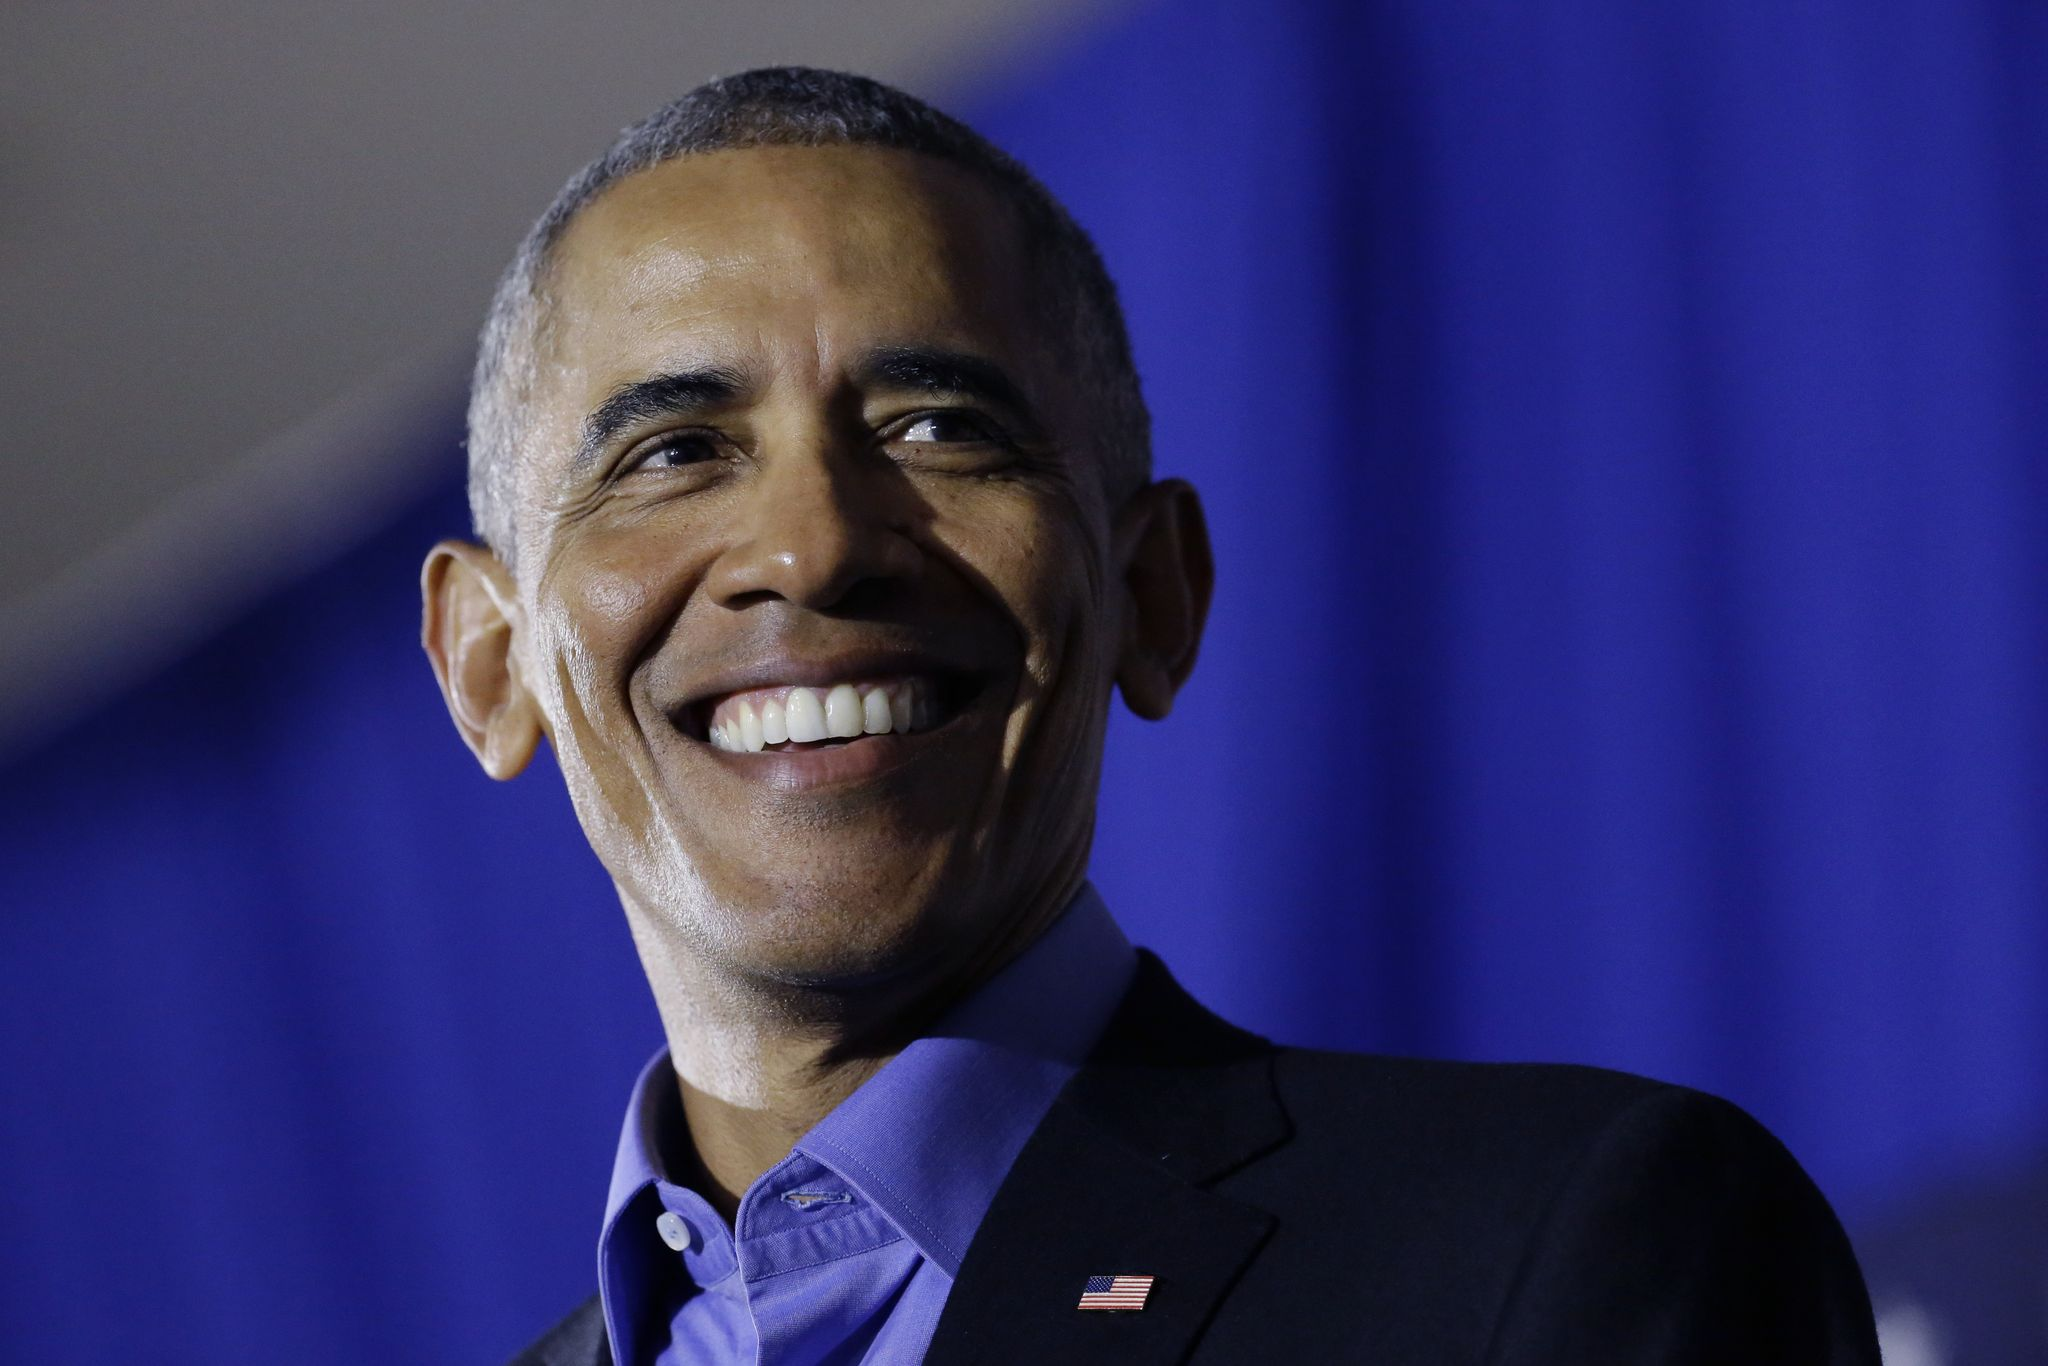 Obama best president of lifetime or second-best, plurality of Americans say in Pew survey